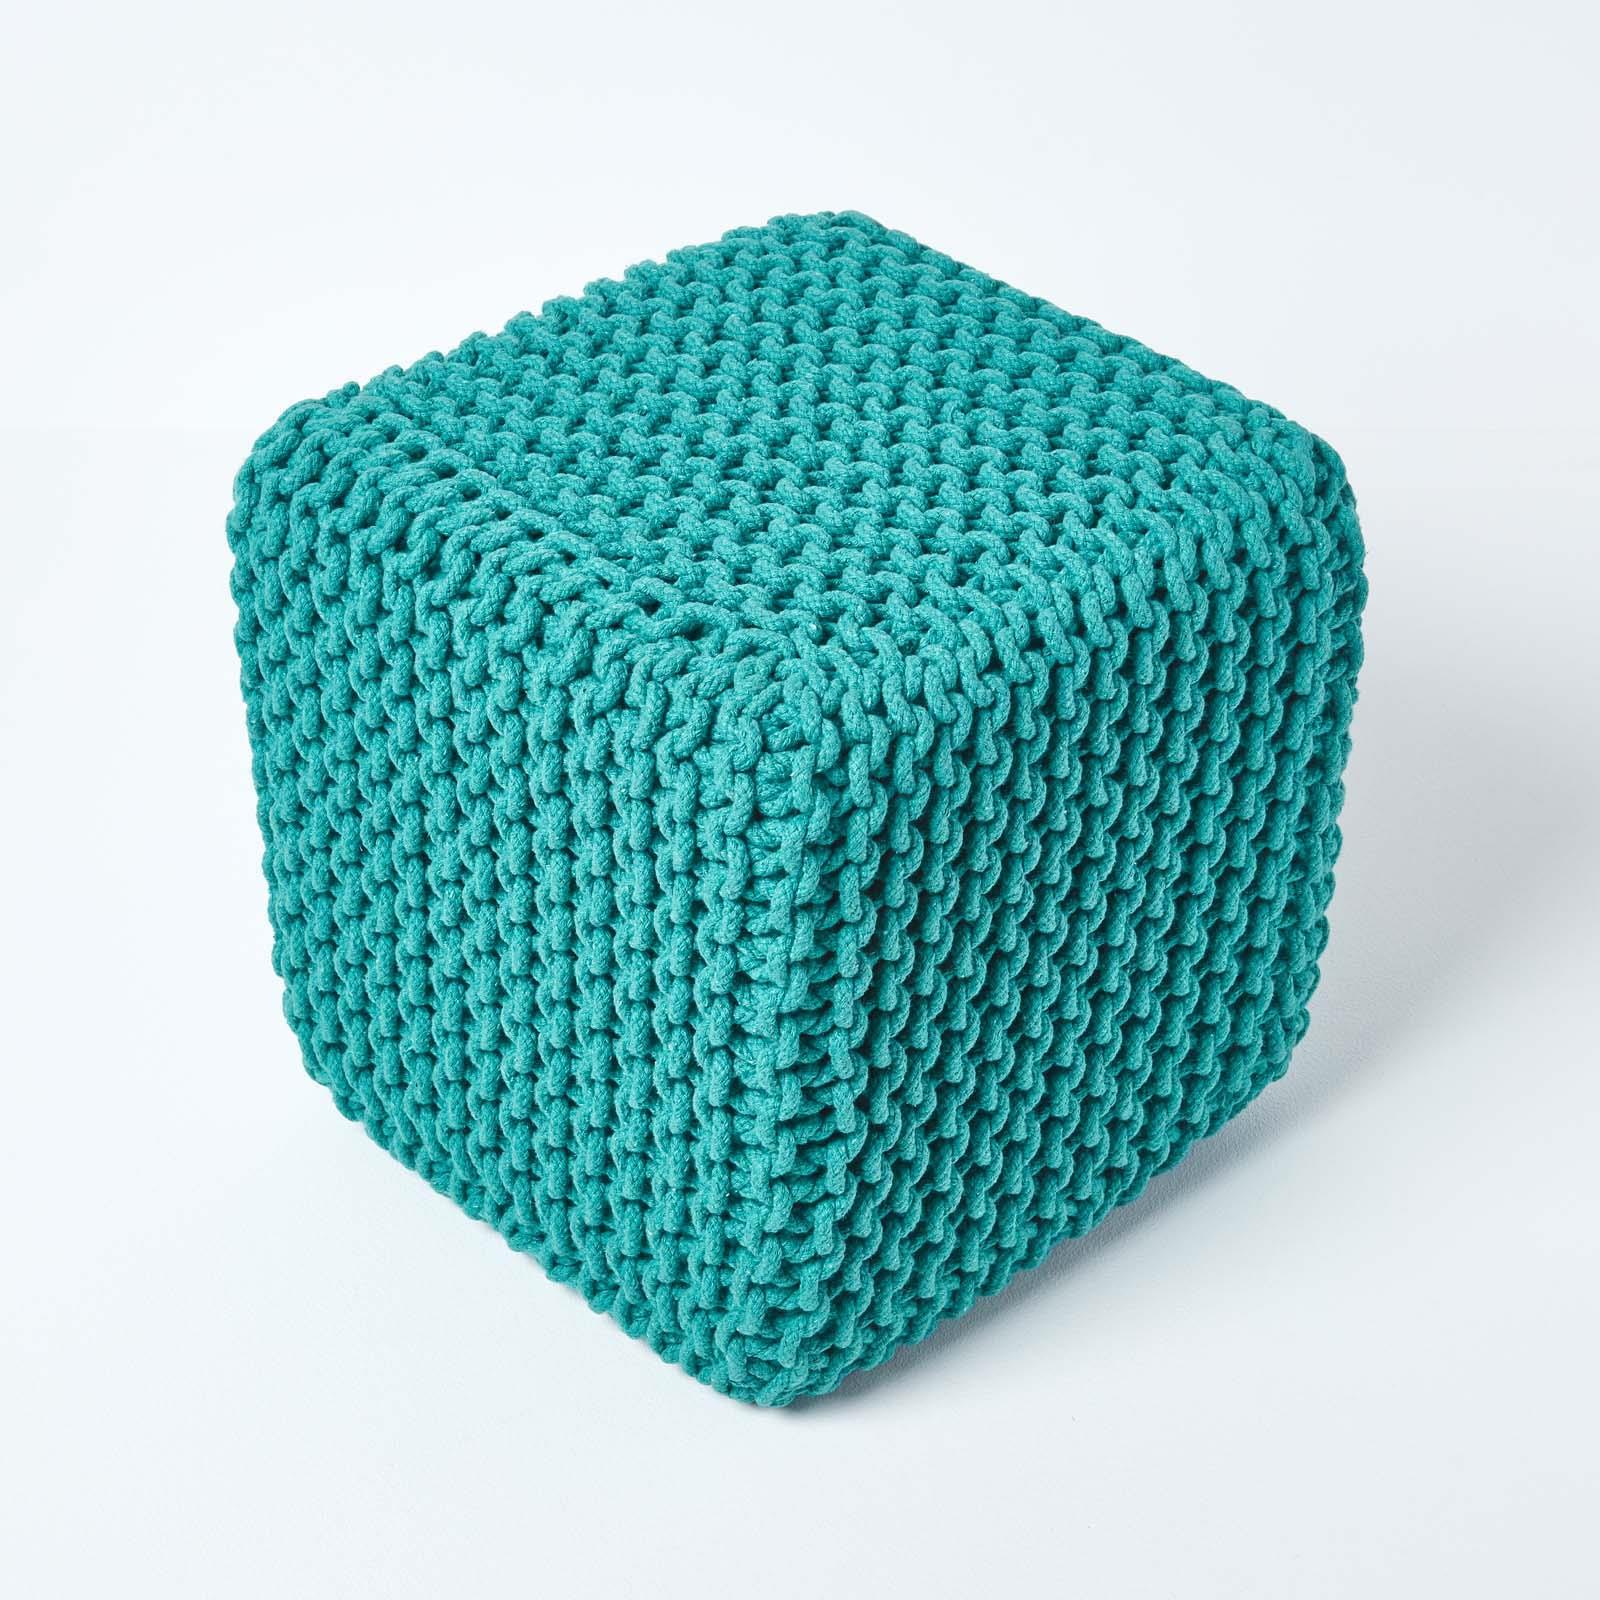 Hand-Knitted-100-Cotton-Pouffes-Round-Sphere-Or-Cube-Square-Chunky-Footstools thumbnail 200